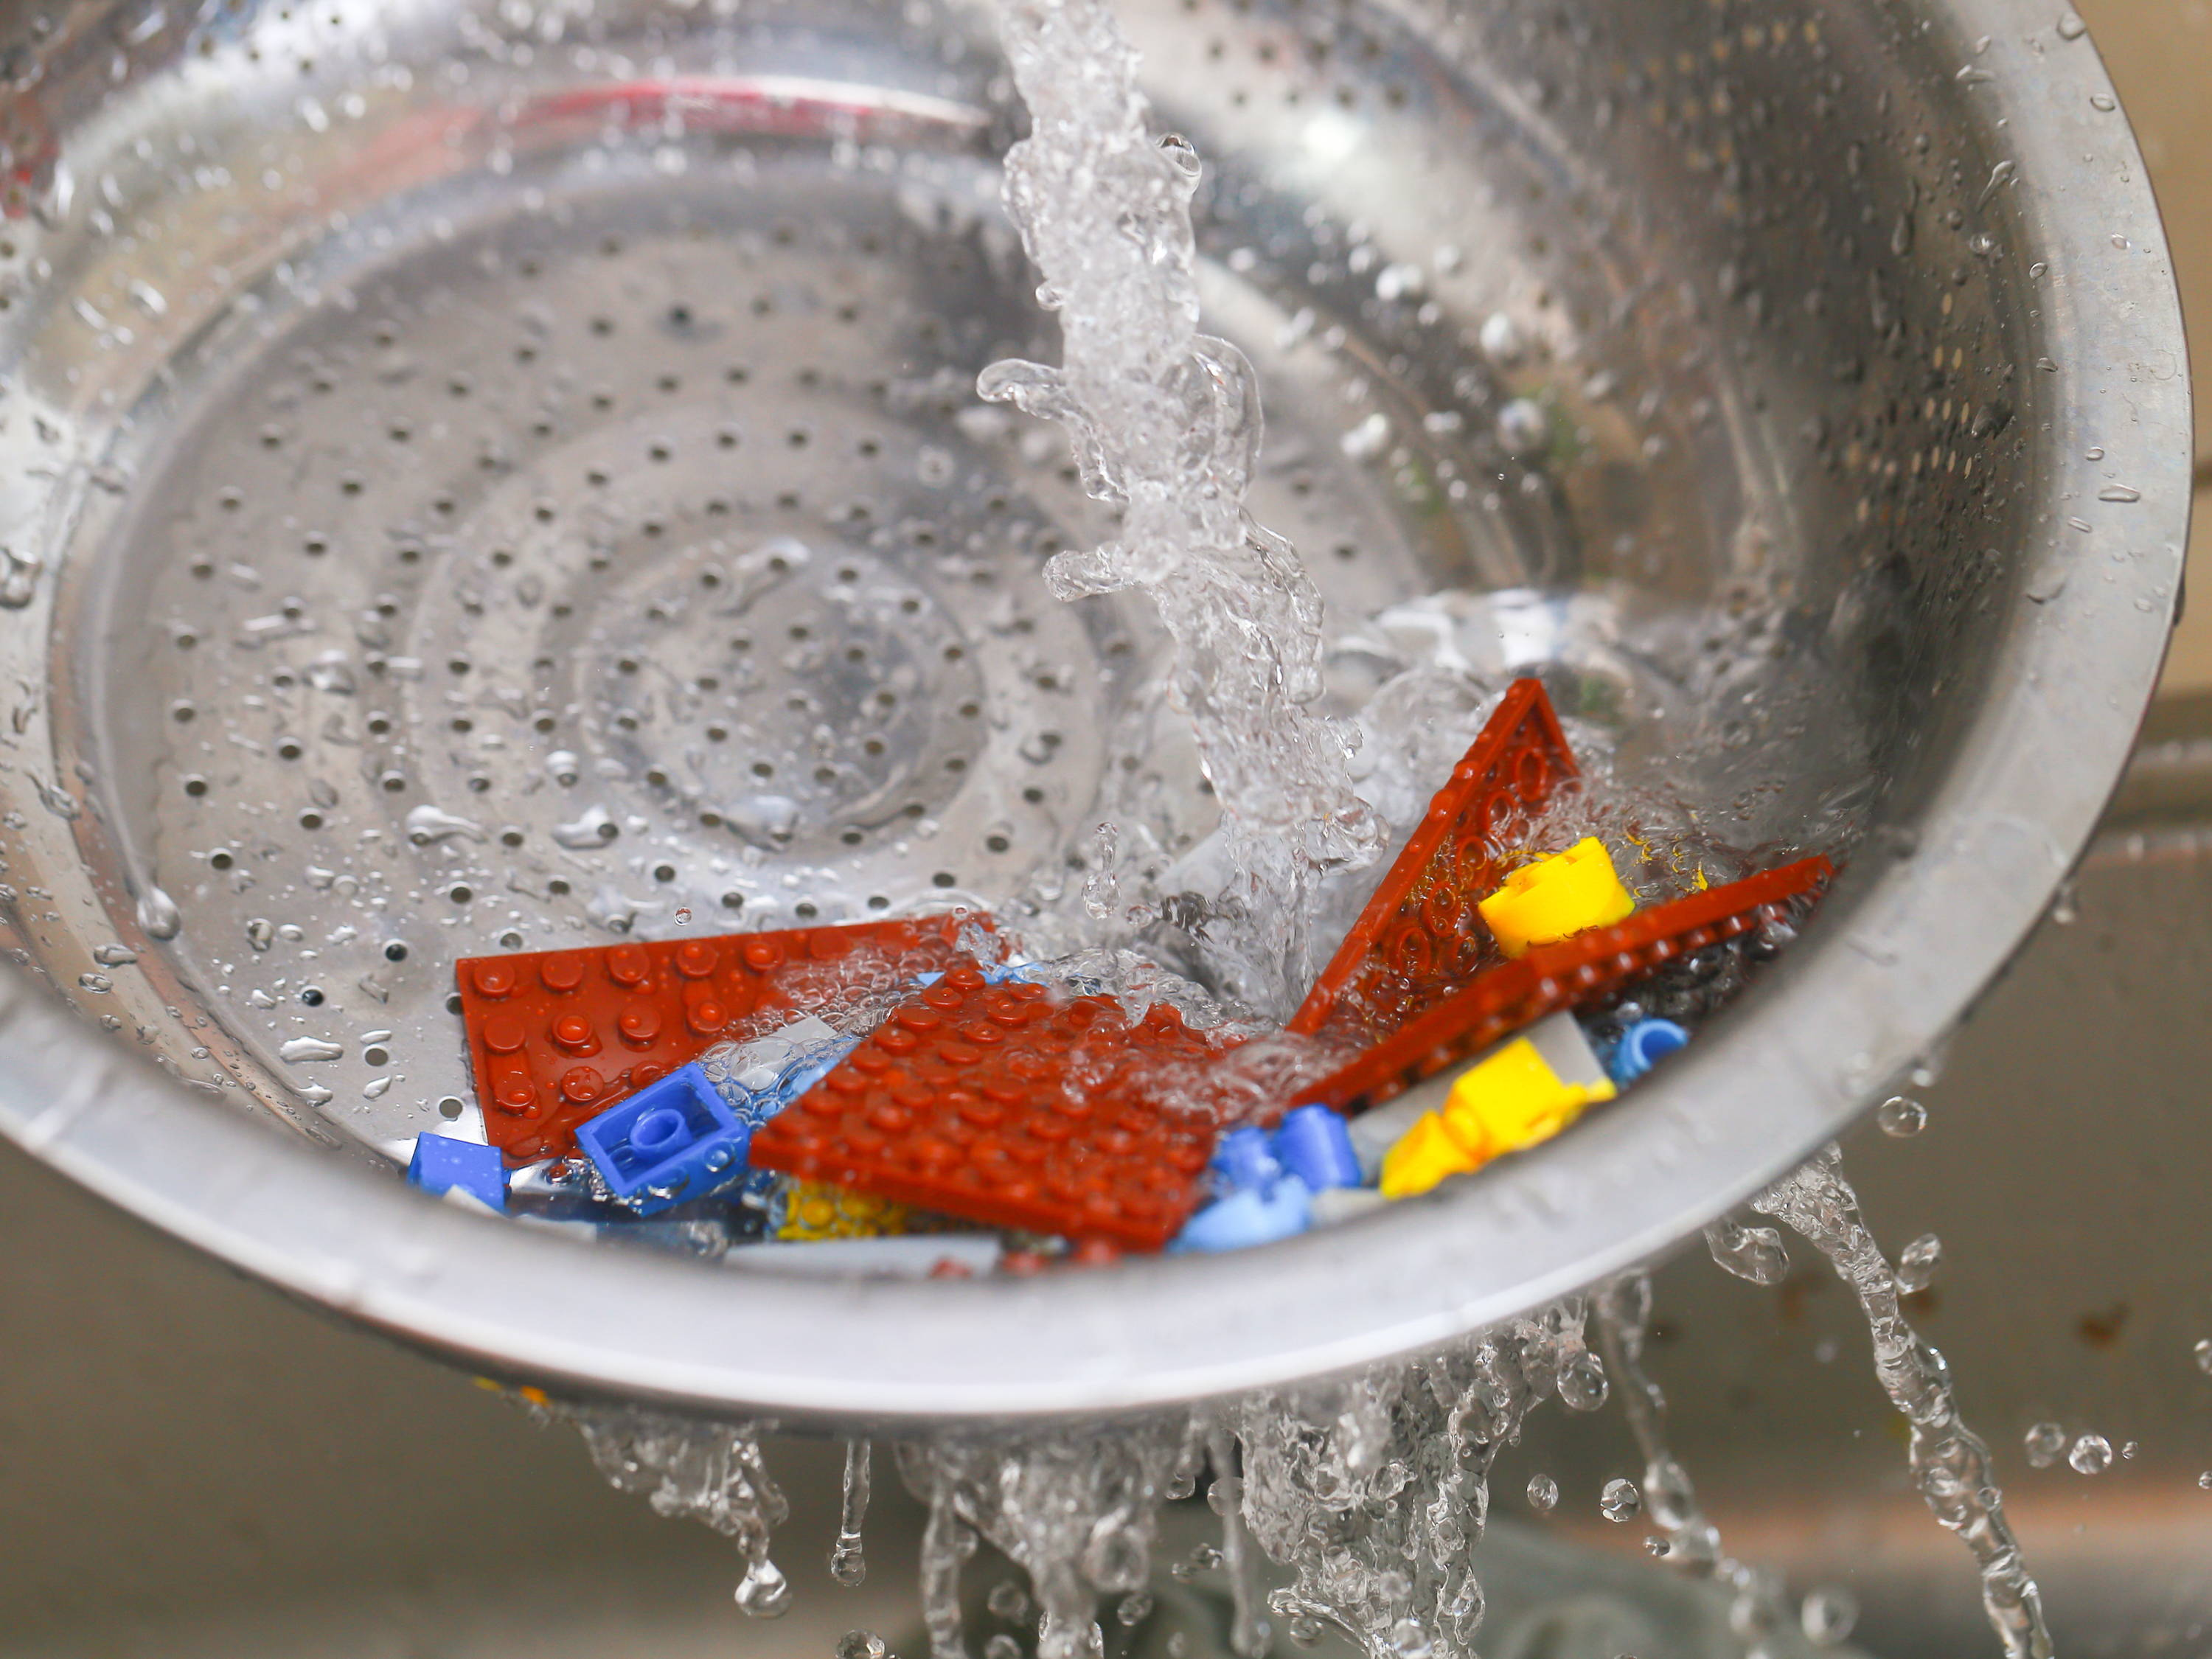 clean lego set with water